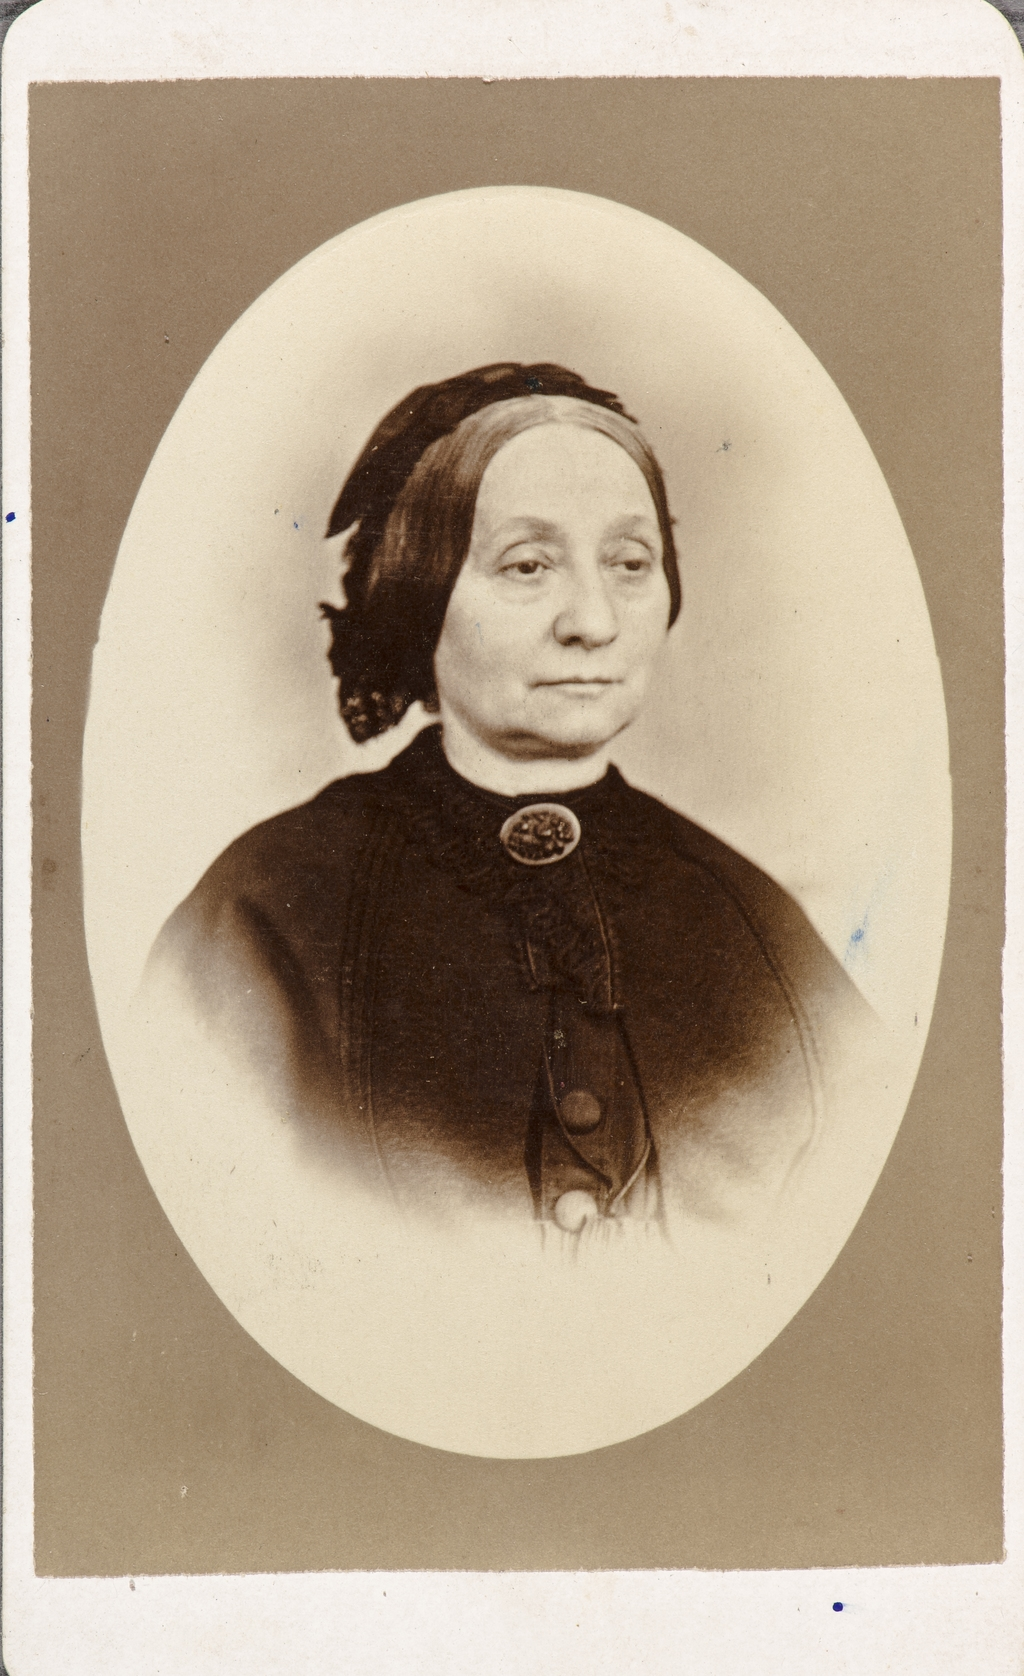 Portrait de femme. Photographie d'une photographie (?), de l'album de collection dit de Napoléon Garneau